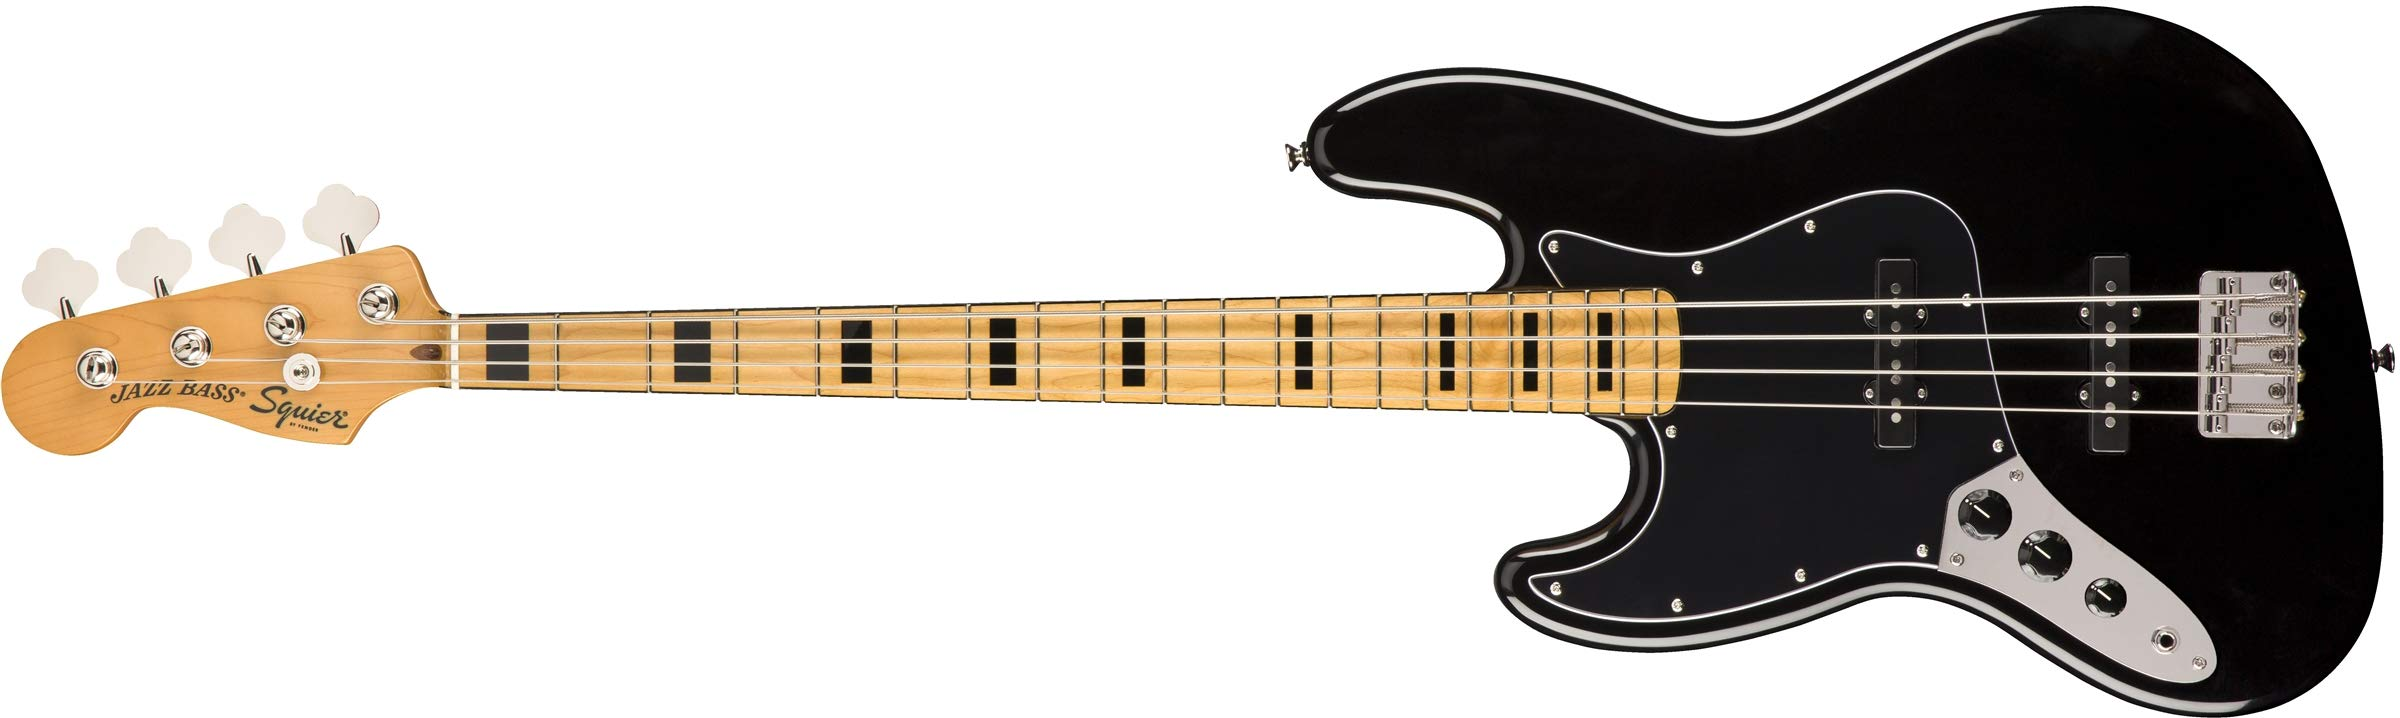 Cheap Squier by Fender Classic Vibe 70 s Left-Handed Jazz Bass - Maple - Black Black Friday & Cyber Monday 2019